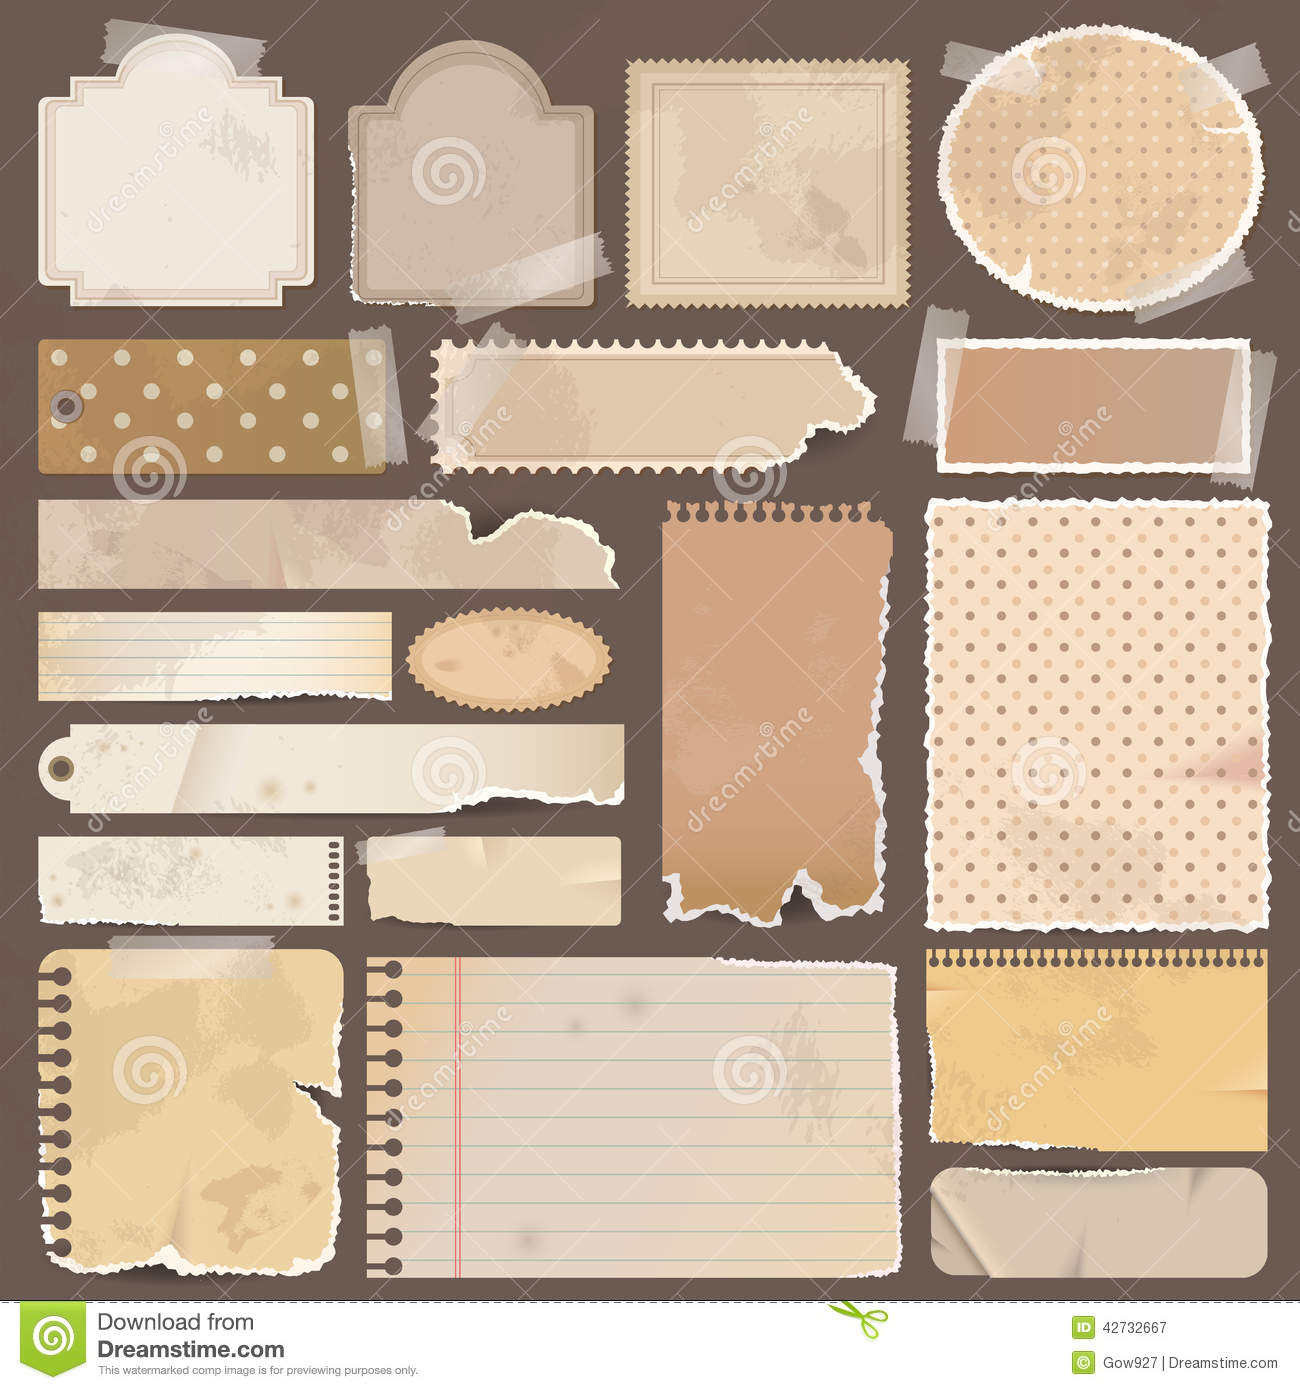 Scrapbook paper note - Various Old Remnant Pieces Of Paper Scrapbook An Royalty Free Stock Photography